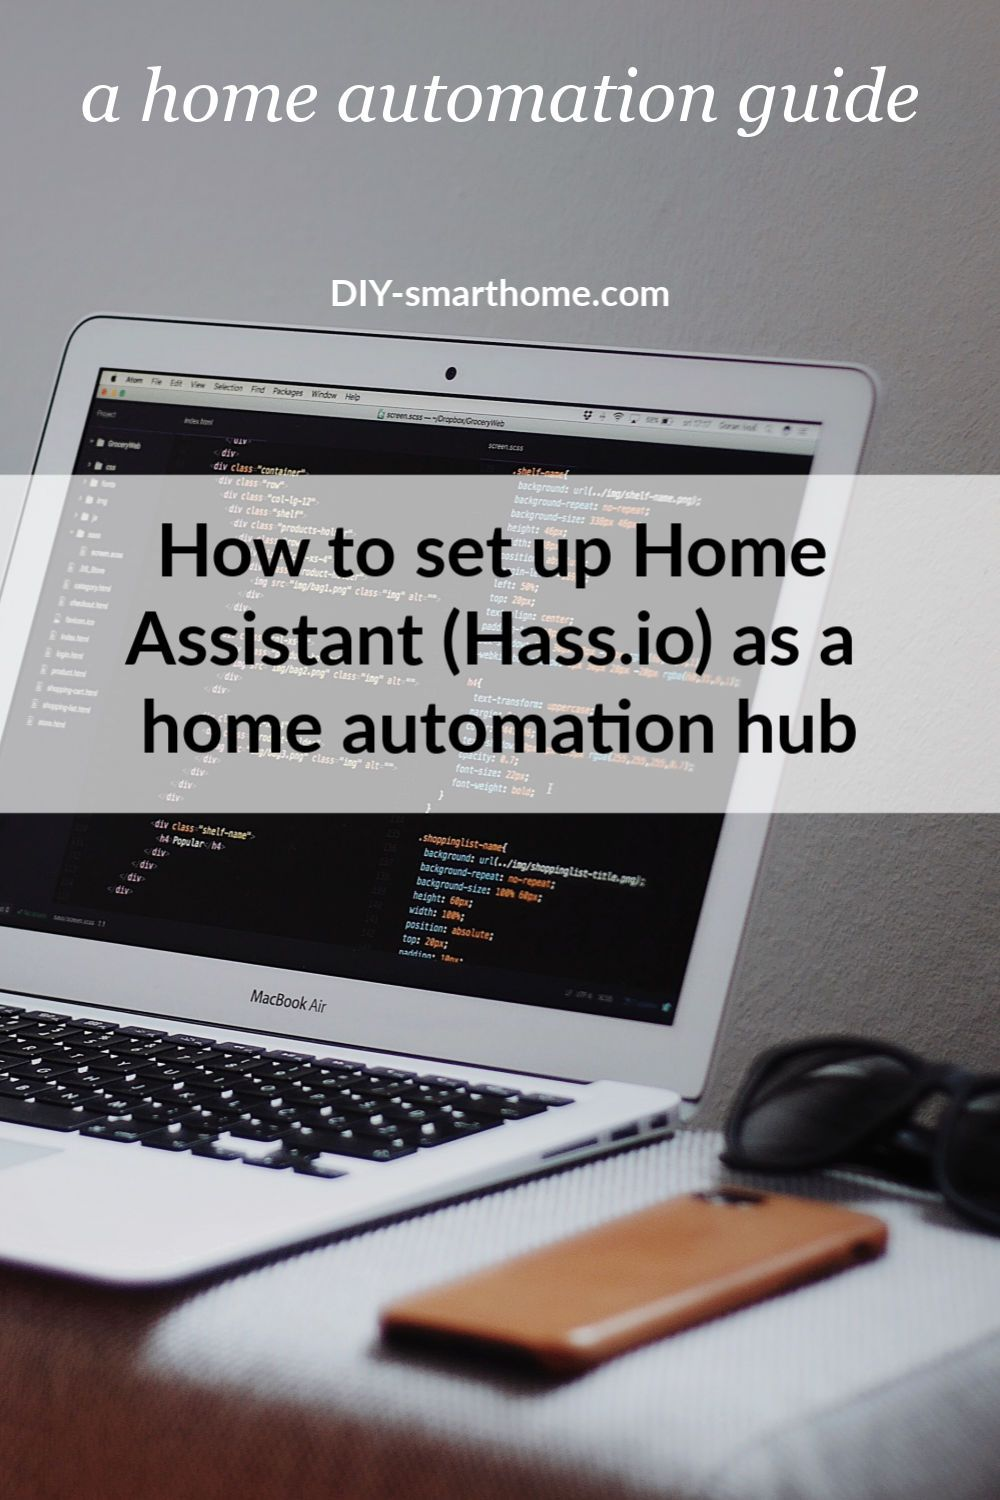 How to set up Home Assistant as a home automation hub #automation